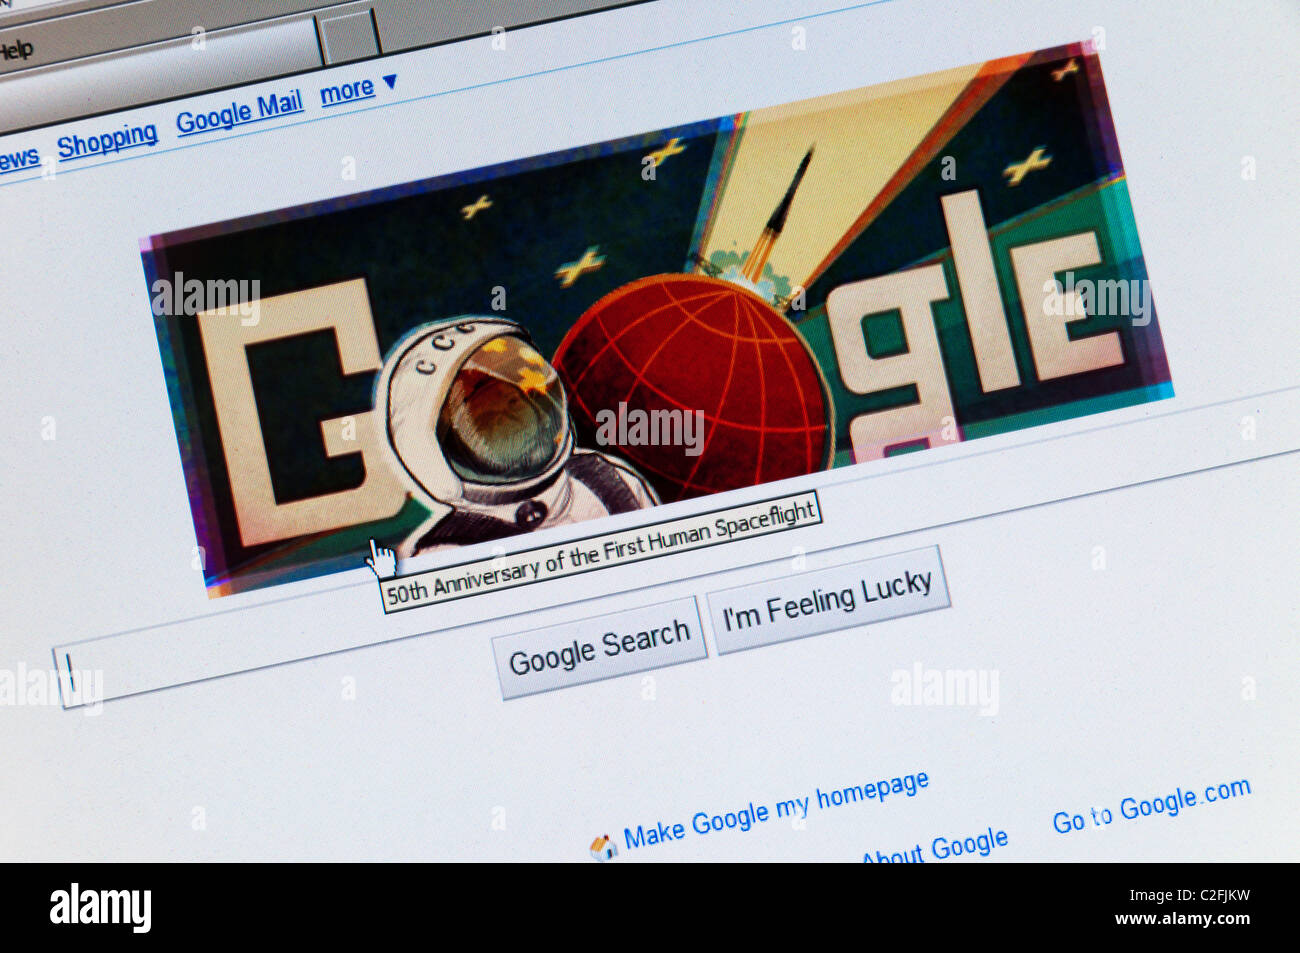 The Google search engine web site front page celebrating the 50th anniversary of the first human spaceflight by - Stock Image